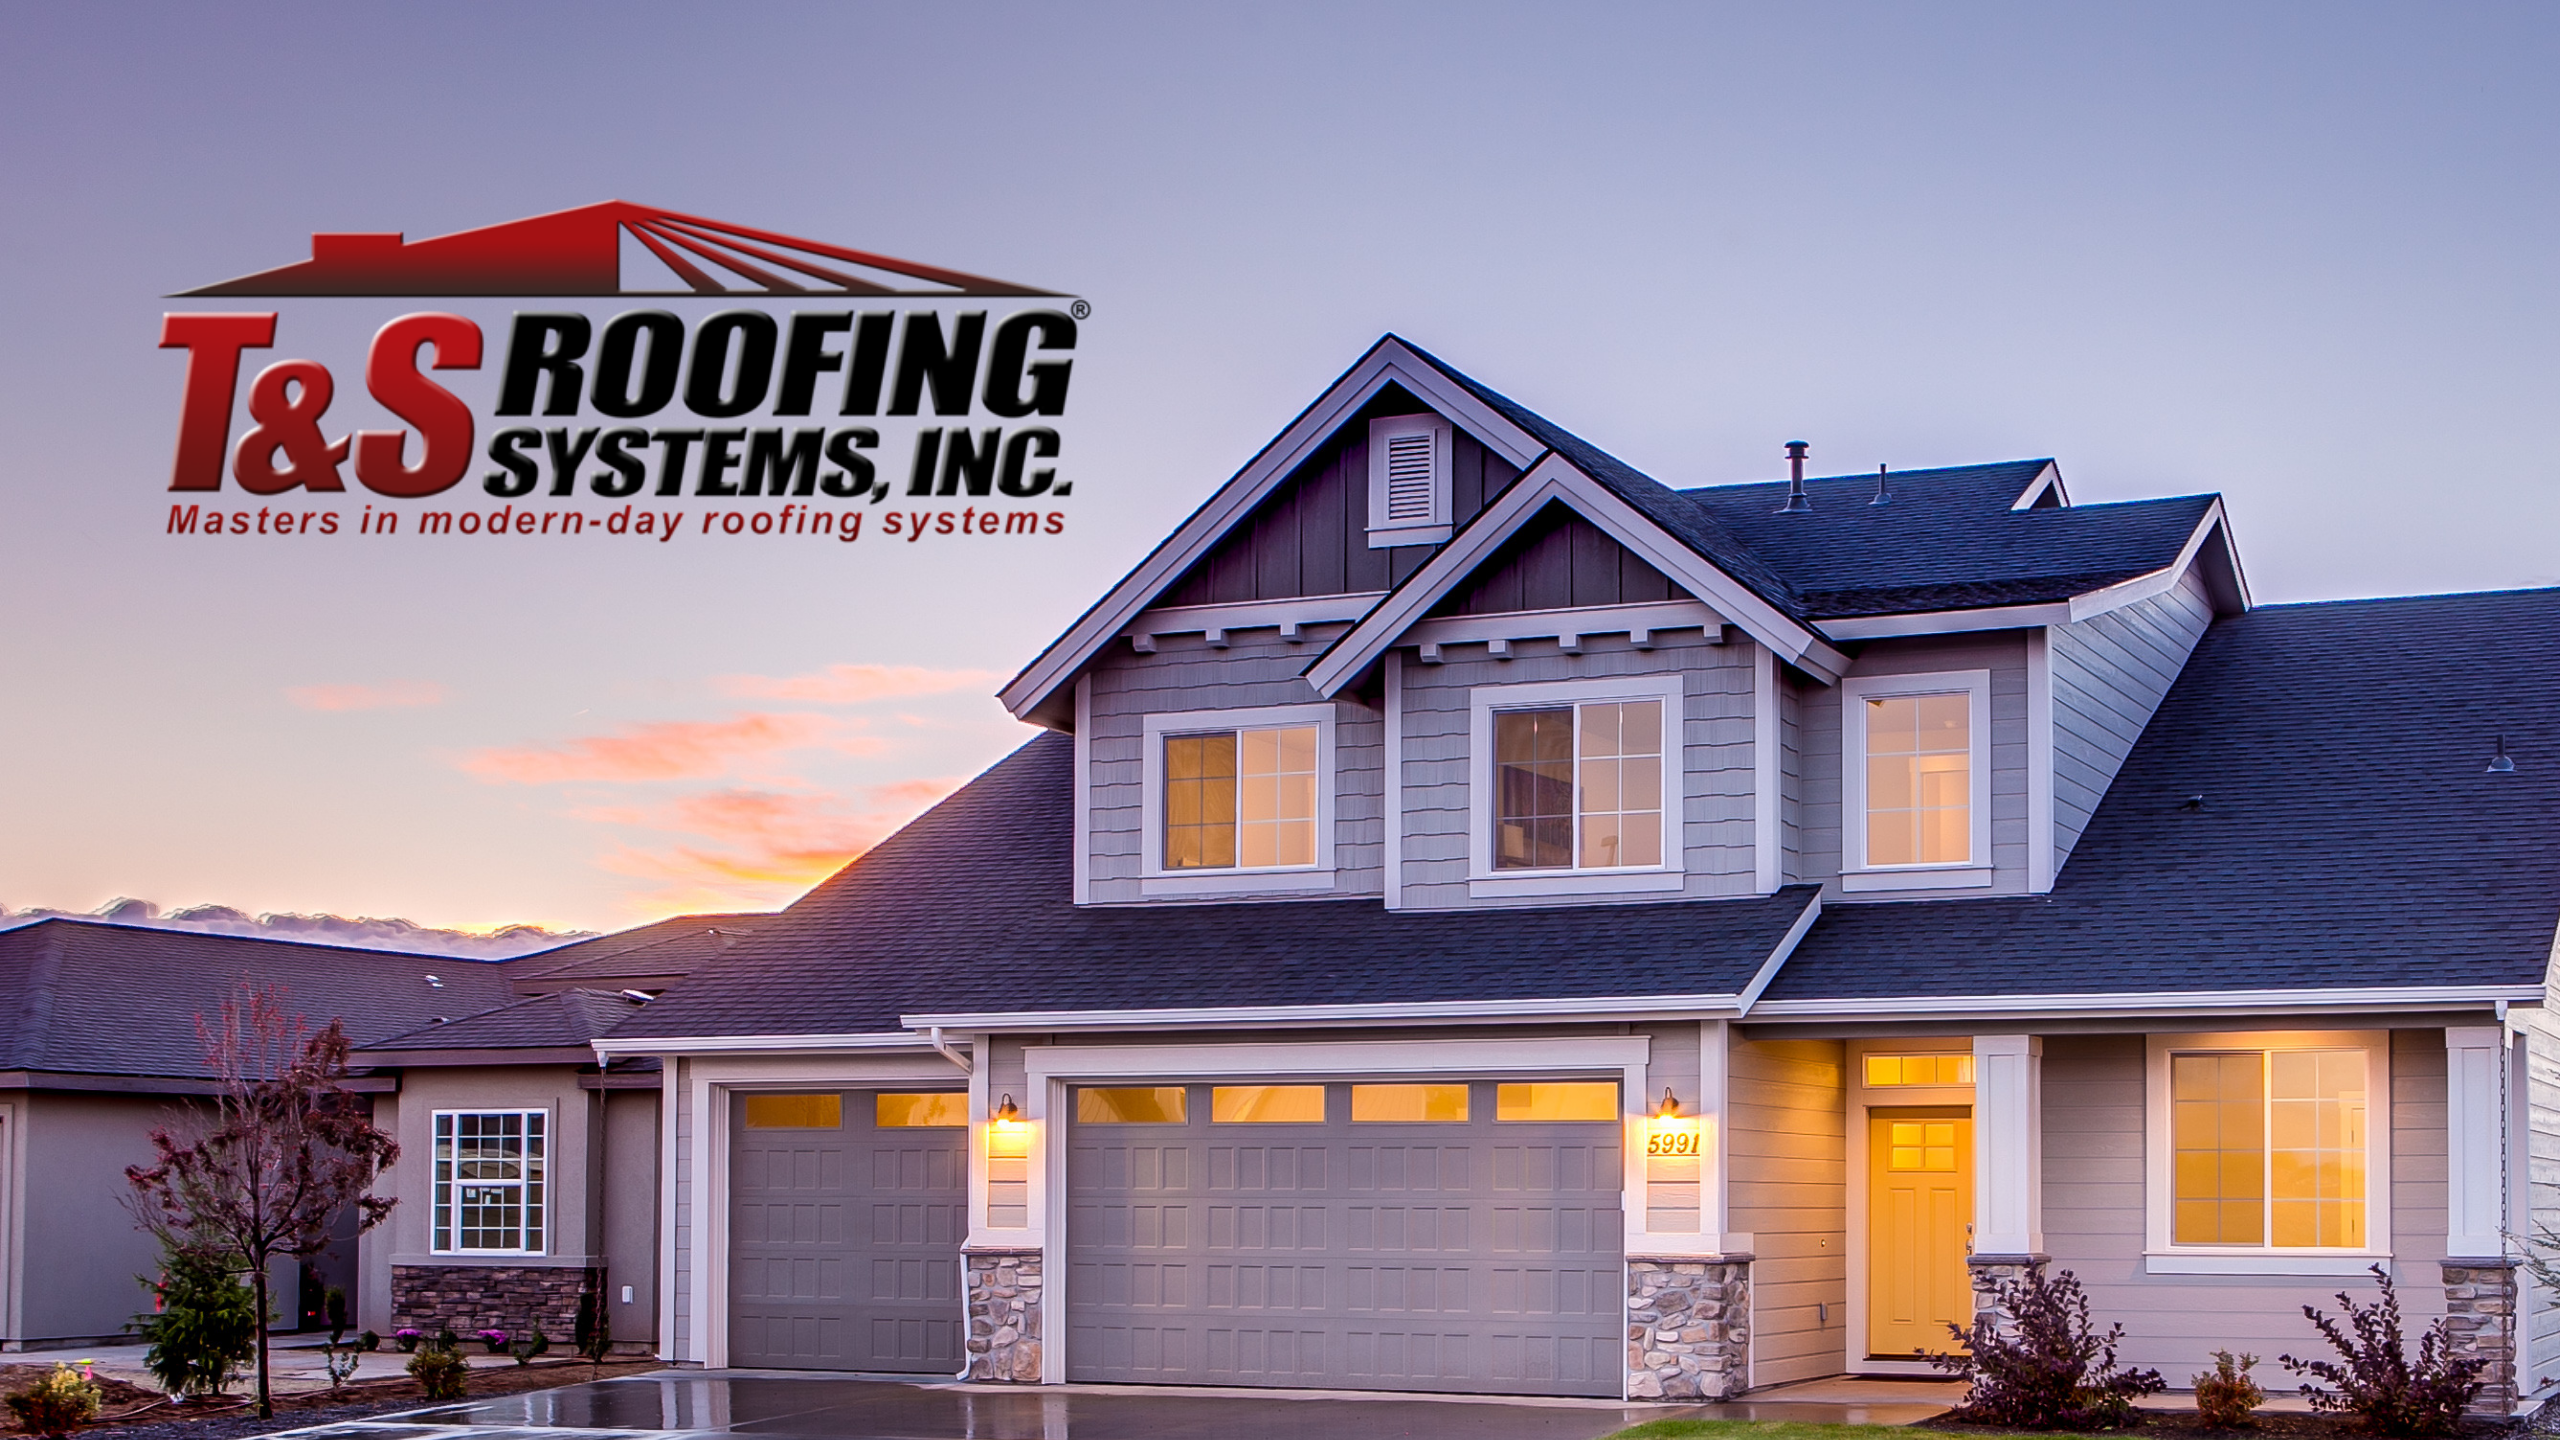 T&S Roofing Systems SugarCRM Case Study